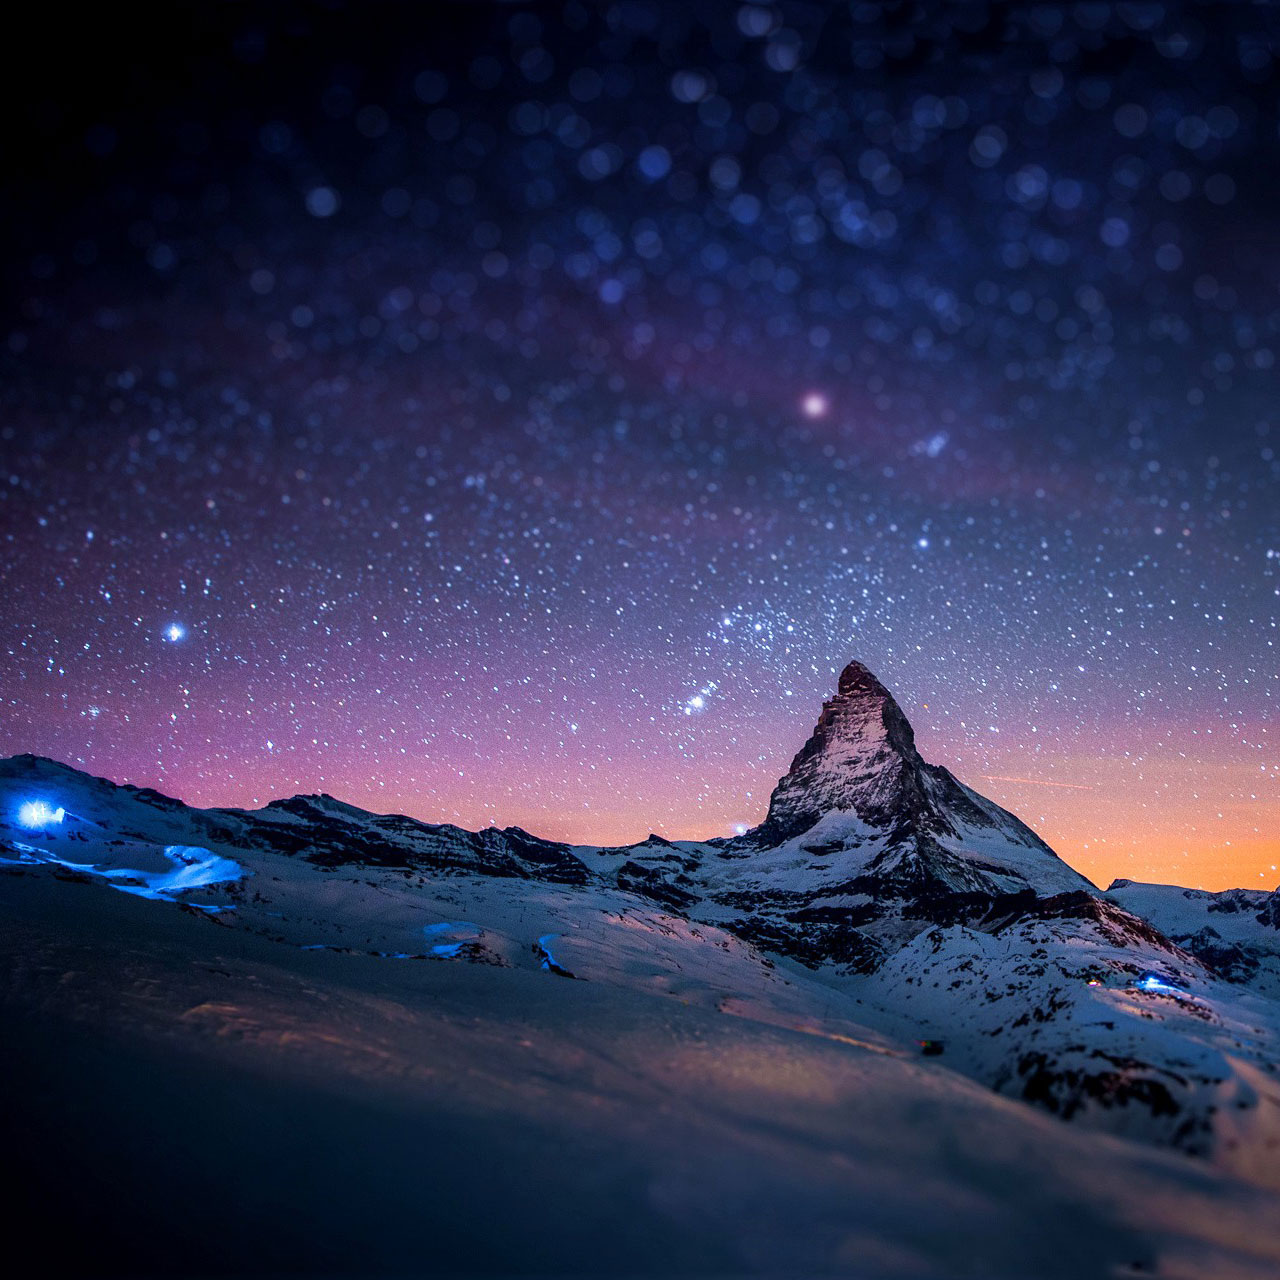 Stars And Snow Night In The Alps Samsung Galaxy Tab 10 wallpapers 1280x1280